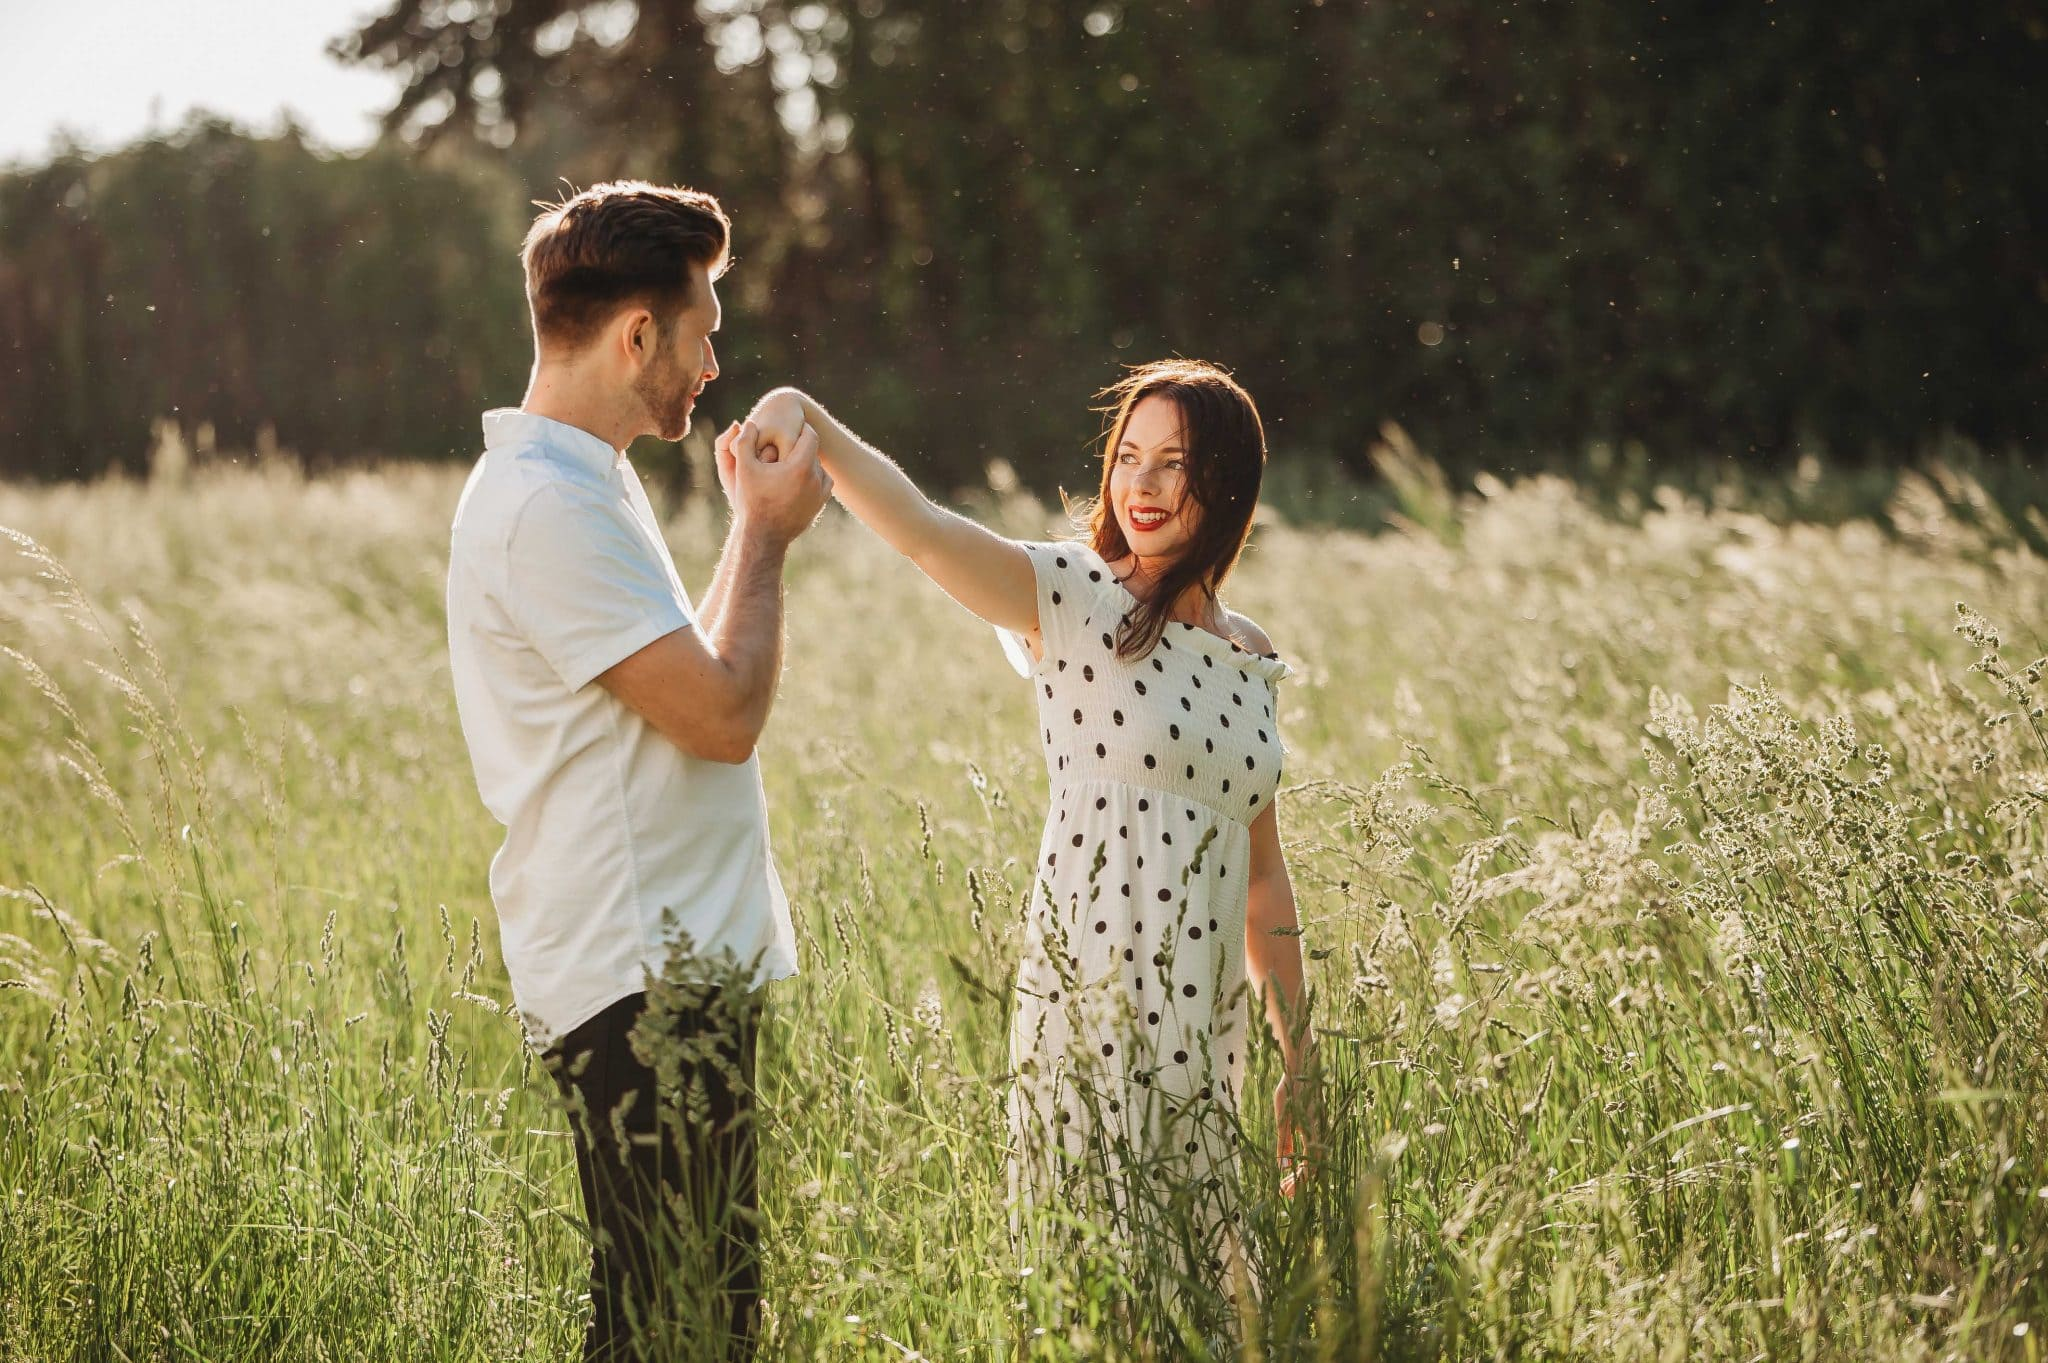 Lucy and Hayden's engagement shoot